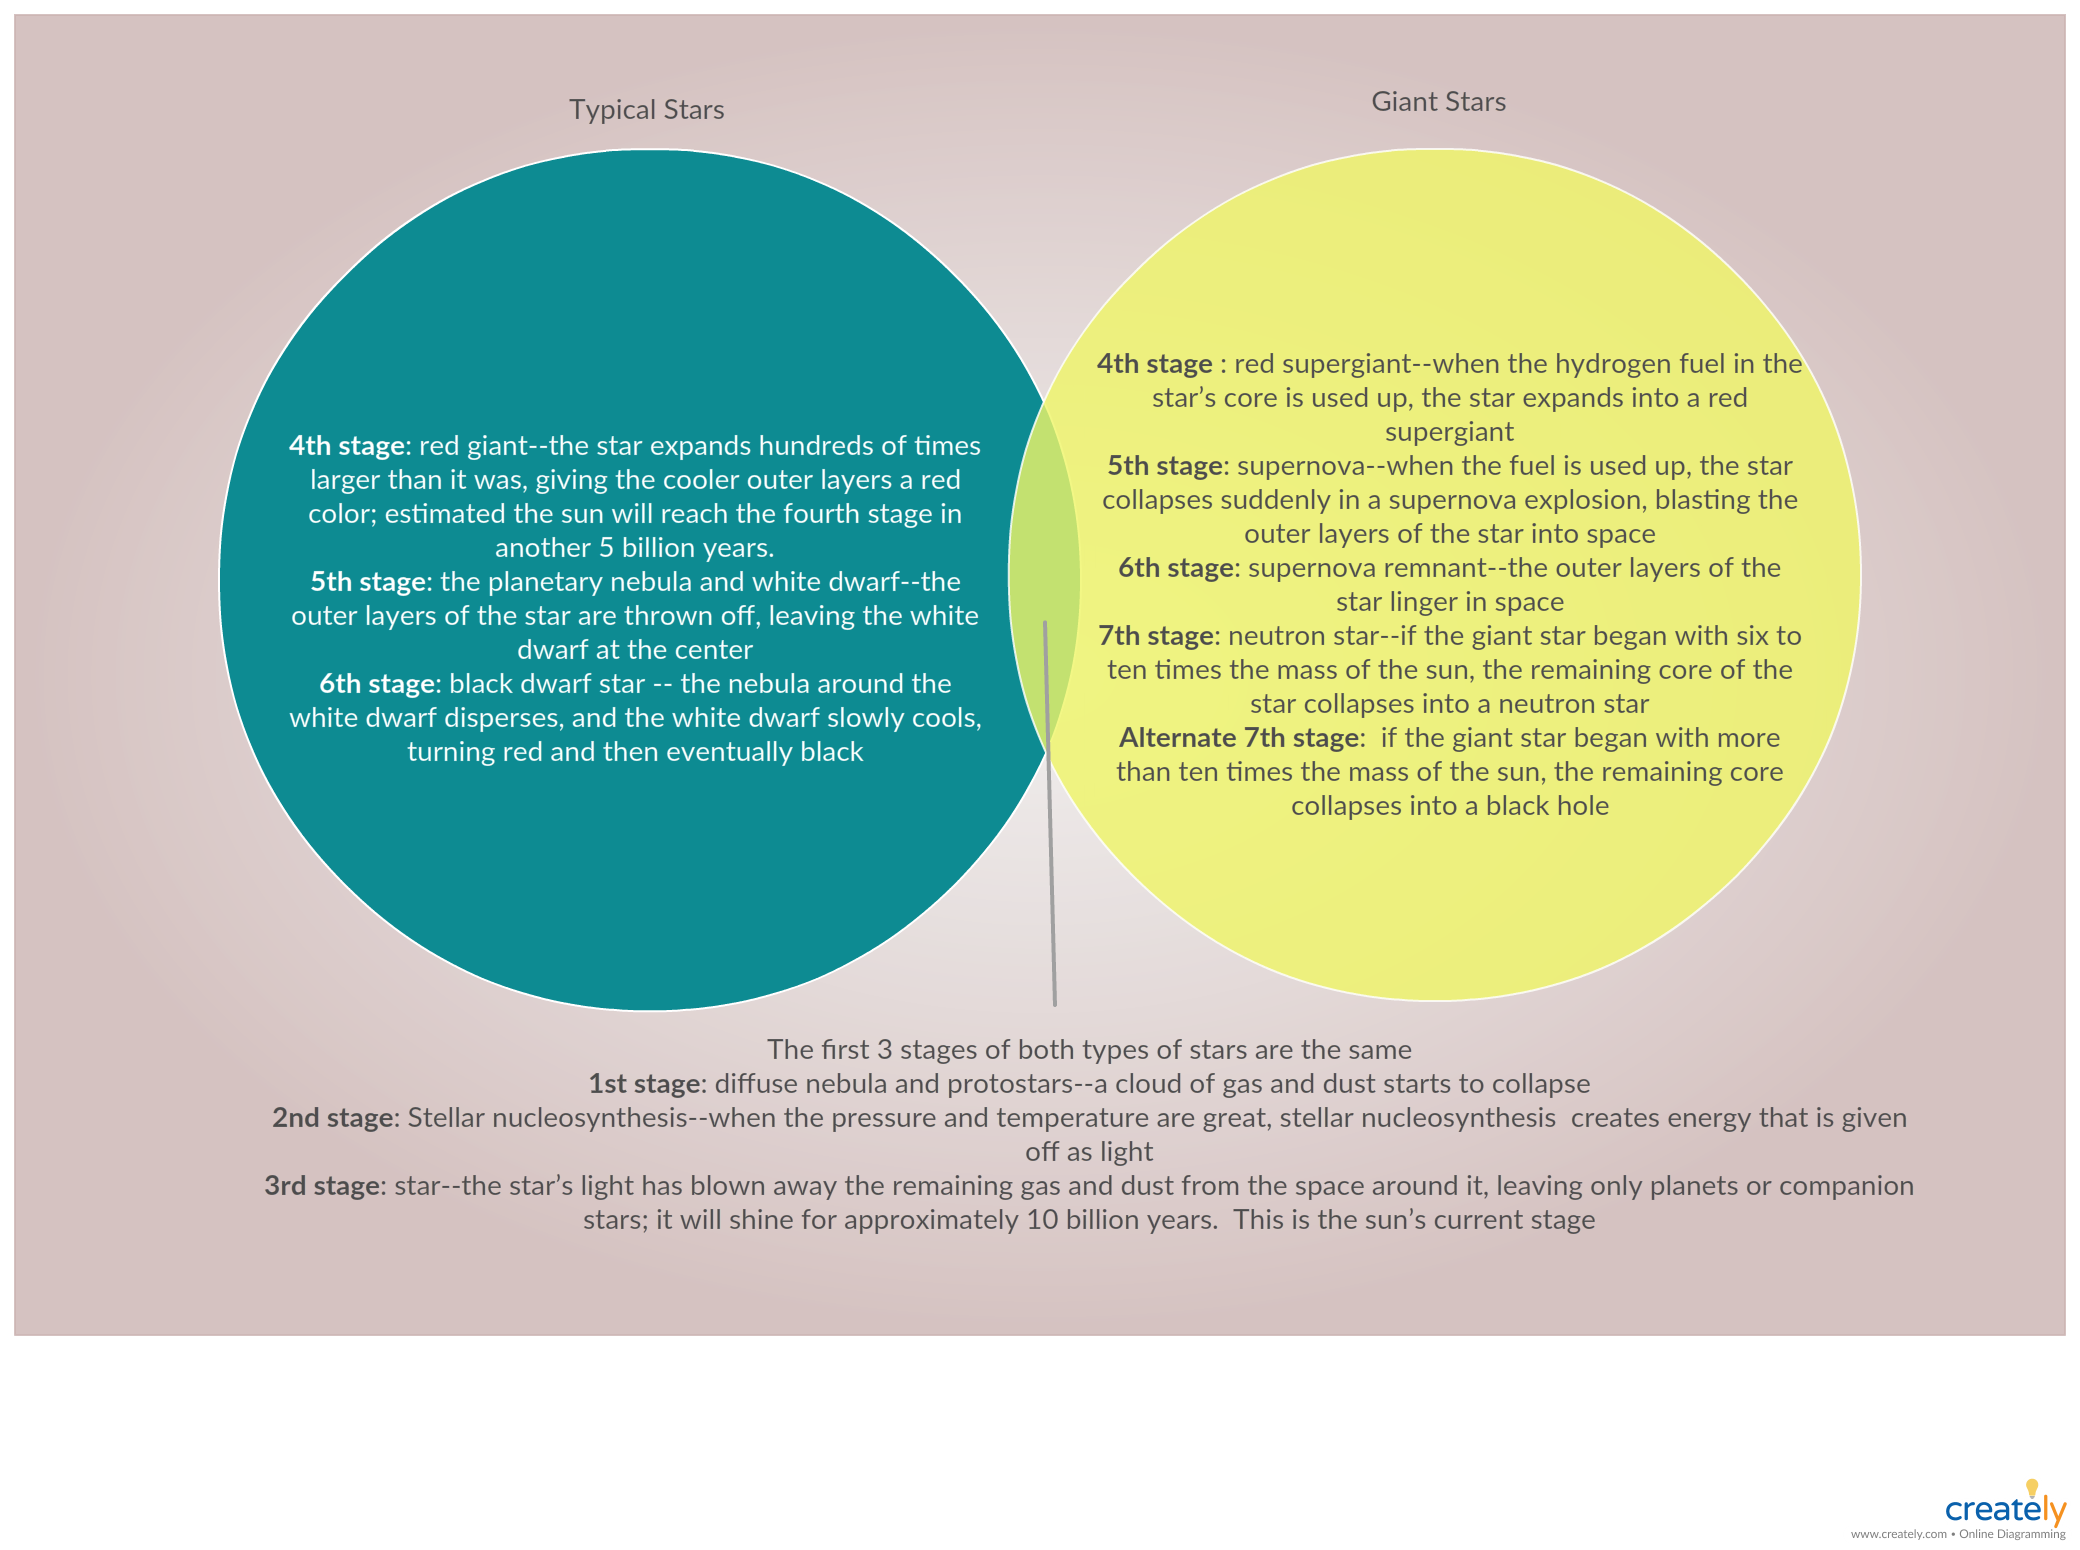 Life Cycles Of Stars A Venn Diagram Comparison Shows The Difference Stages And The Common Stages Between Typic Venn Diagram Template Life Cycles Venn Diagram